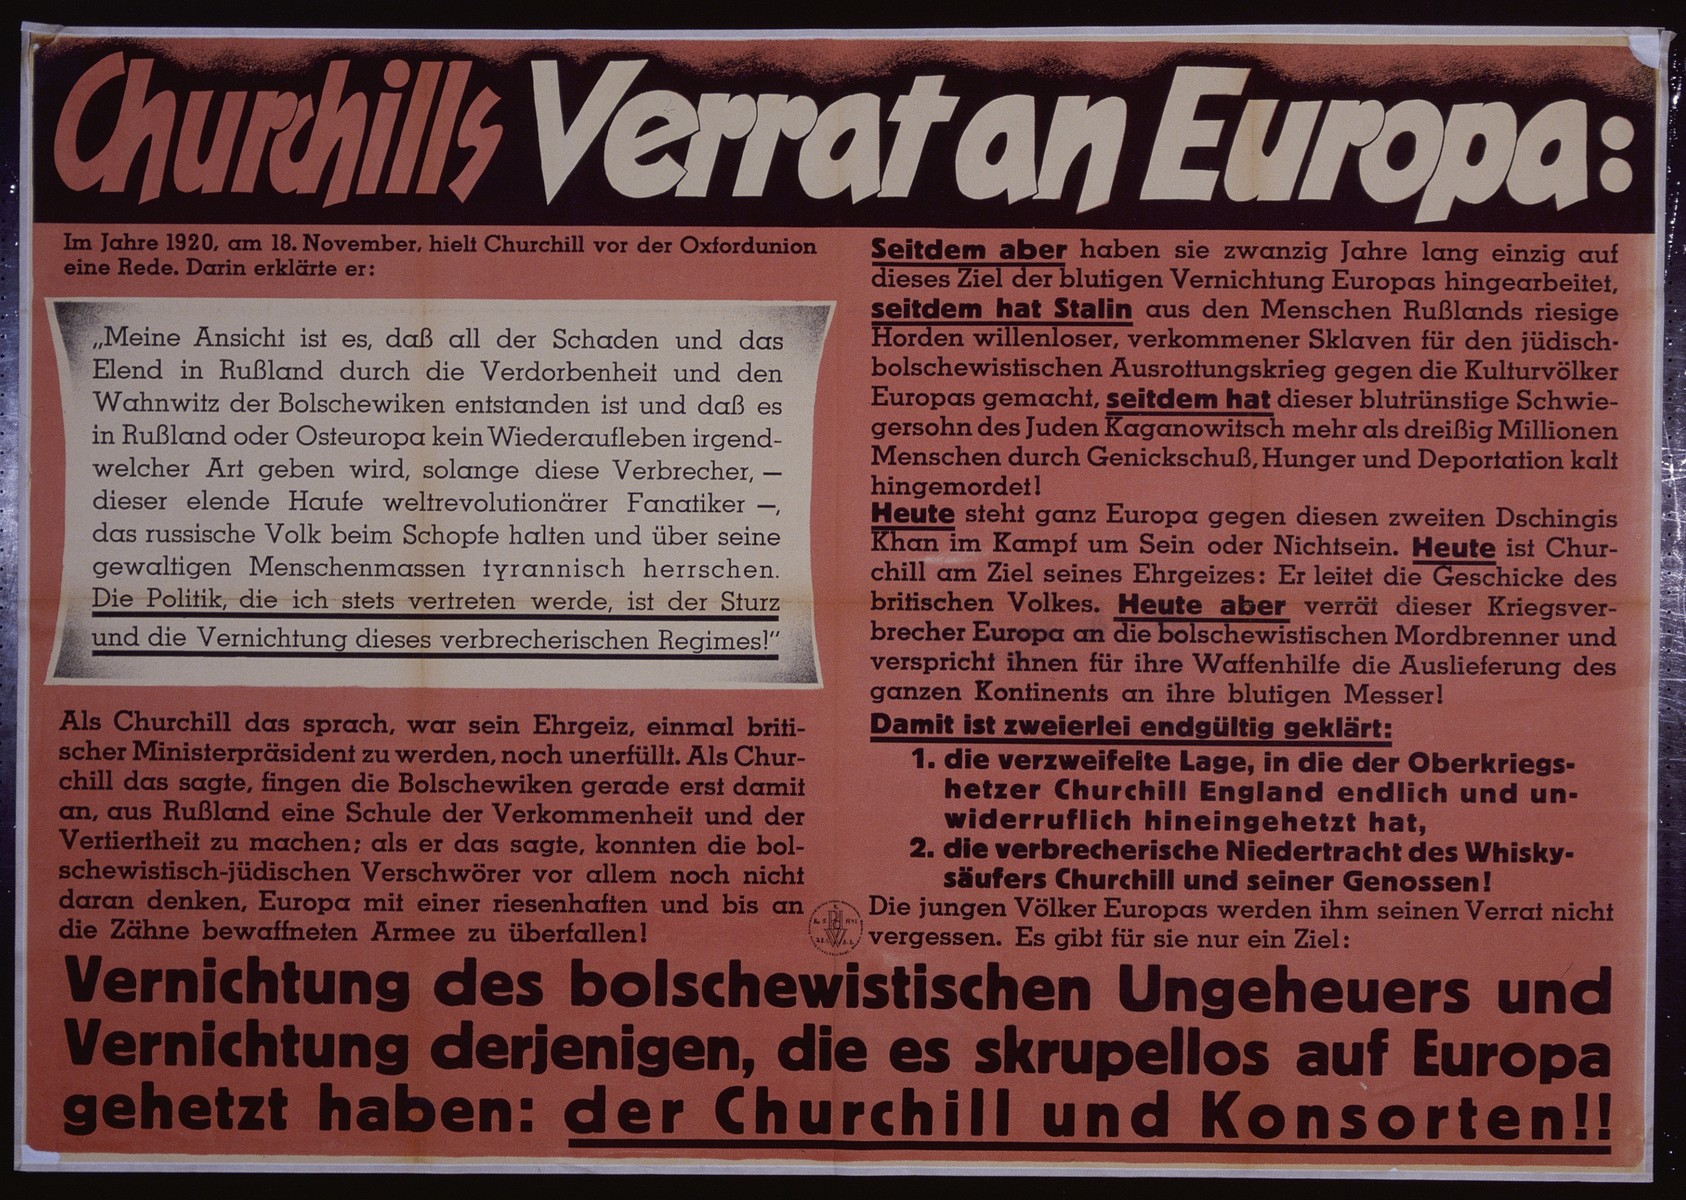 """Nazi propaganda poster entitled, """"Churchills Verrat an Europa,""""  issued by the """"Parole der Woche,"""" a wall newspaper (Wandzeitung) published by the National Socialist Party propaganda office in Munich."""